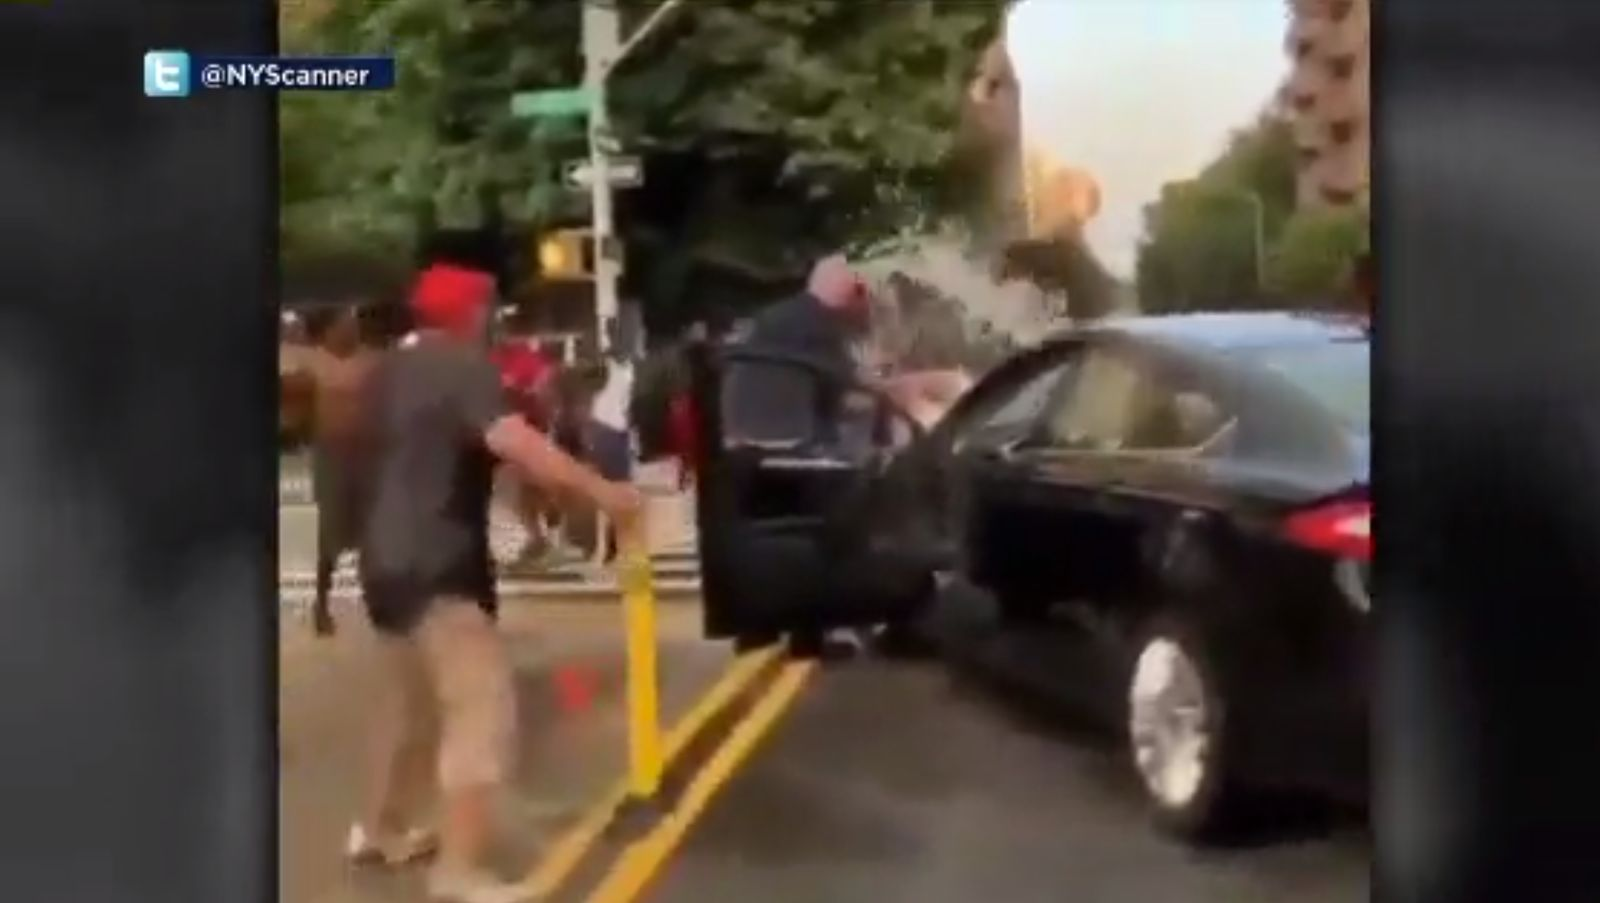 This screenshot of a social media video shows police officers in Harlem being hit with an empty bucket and doused with water as they make an arrest. (Image: WCBS via CNN Newsource)